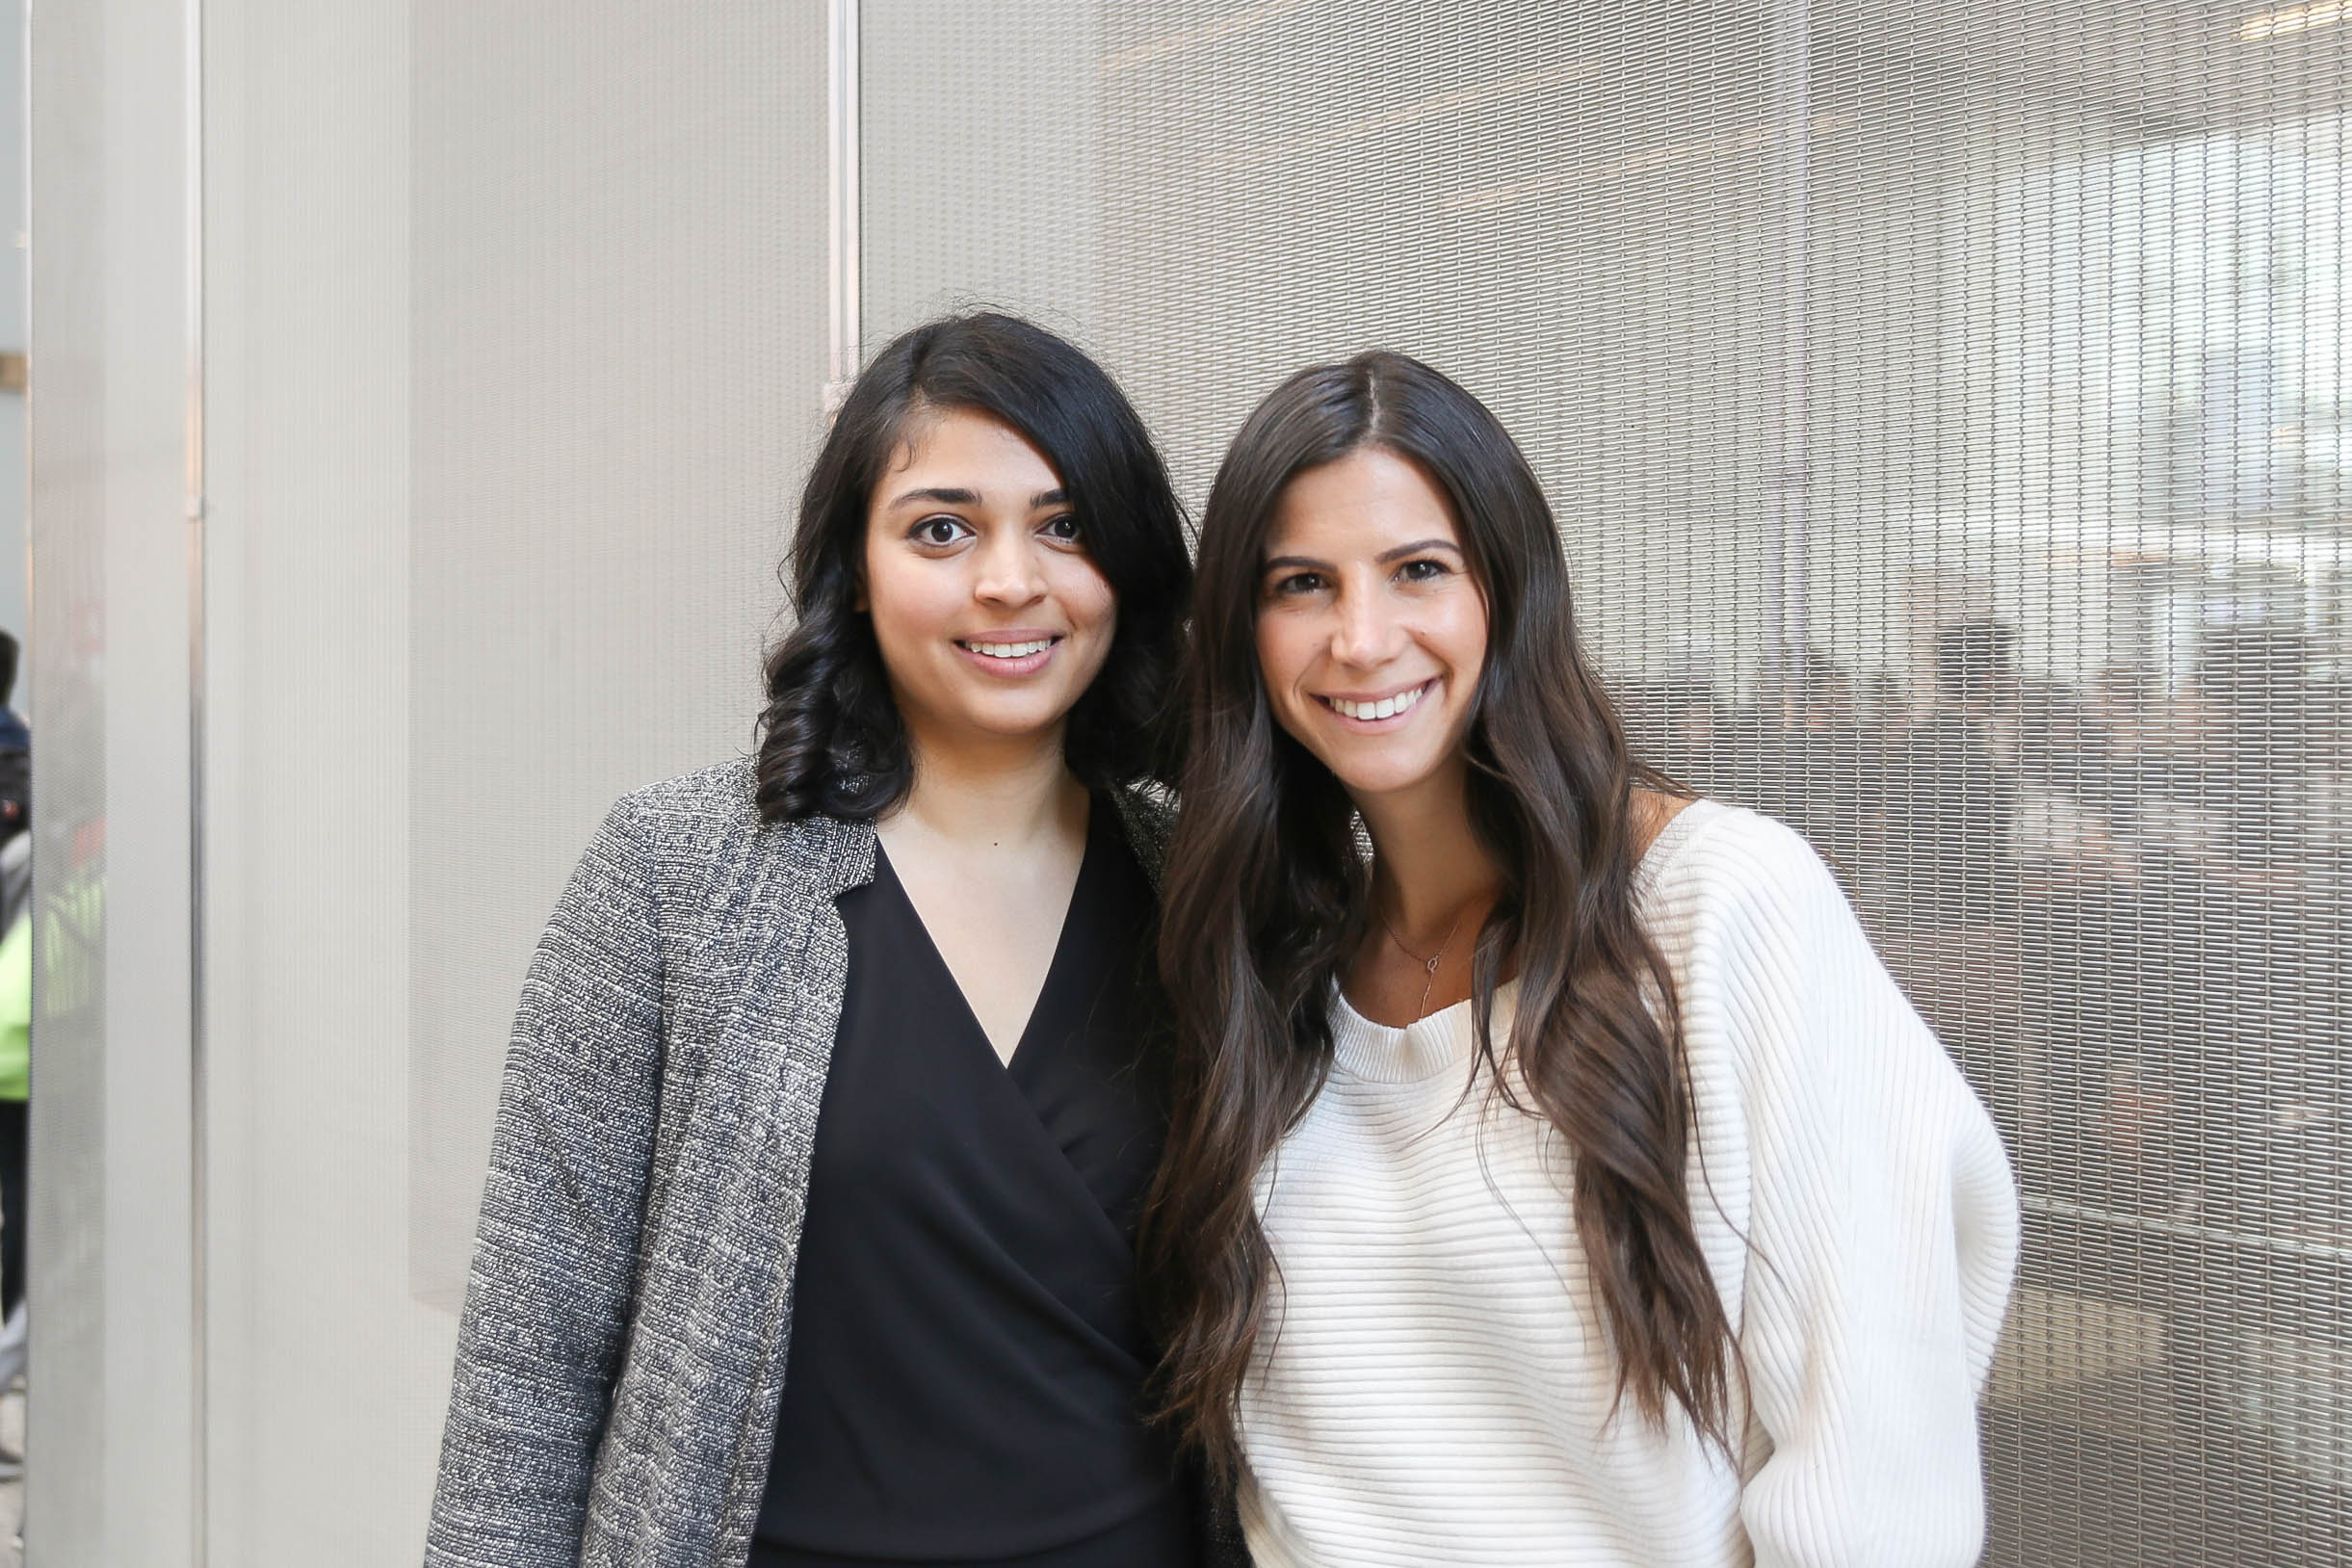 Shonezi Noor (left) and Cynthia Nakad